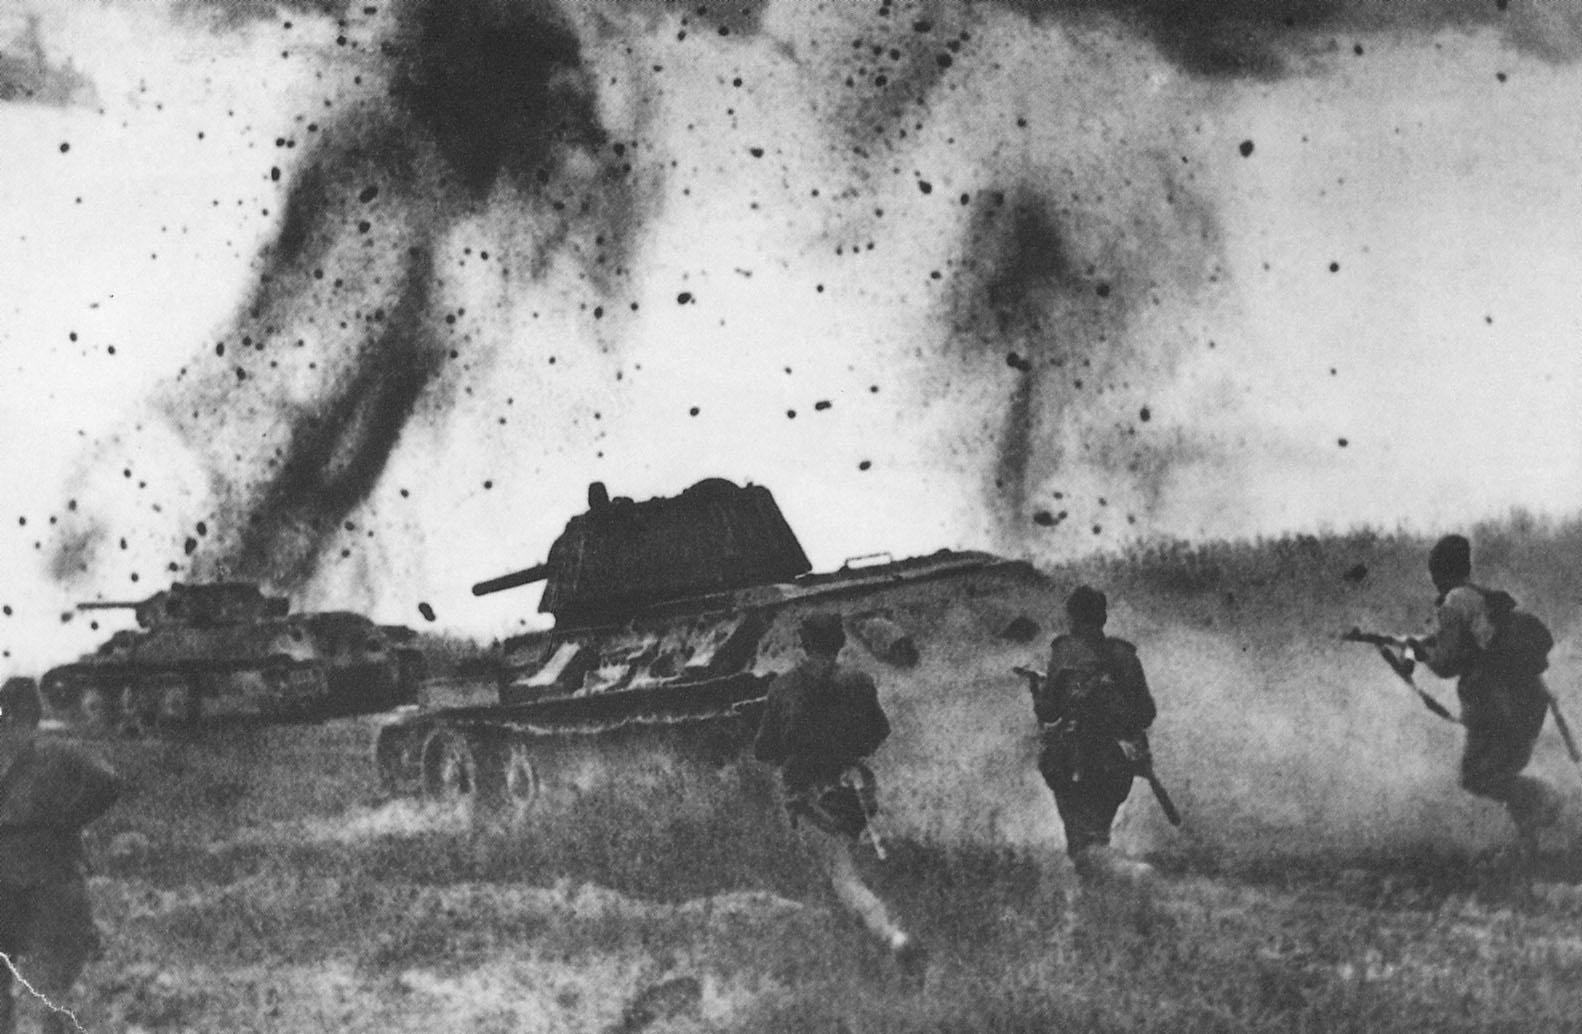 Soviet T-34 tanks and infantry assault German forces at the battle of Kursk.